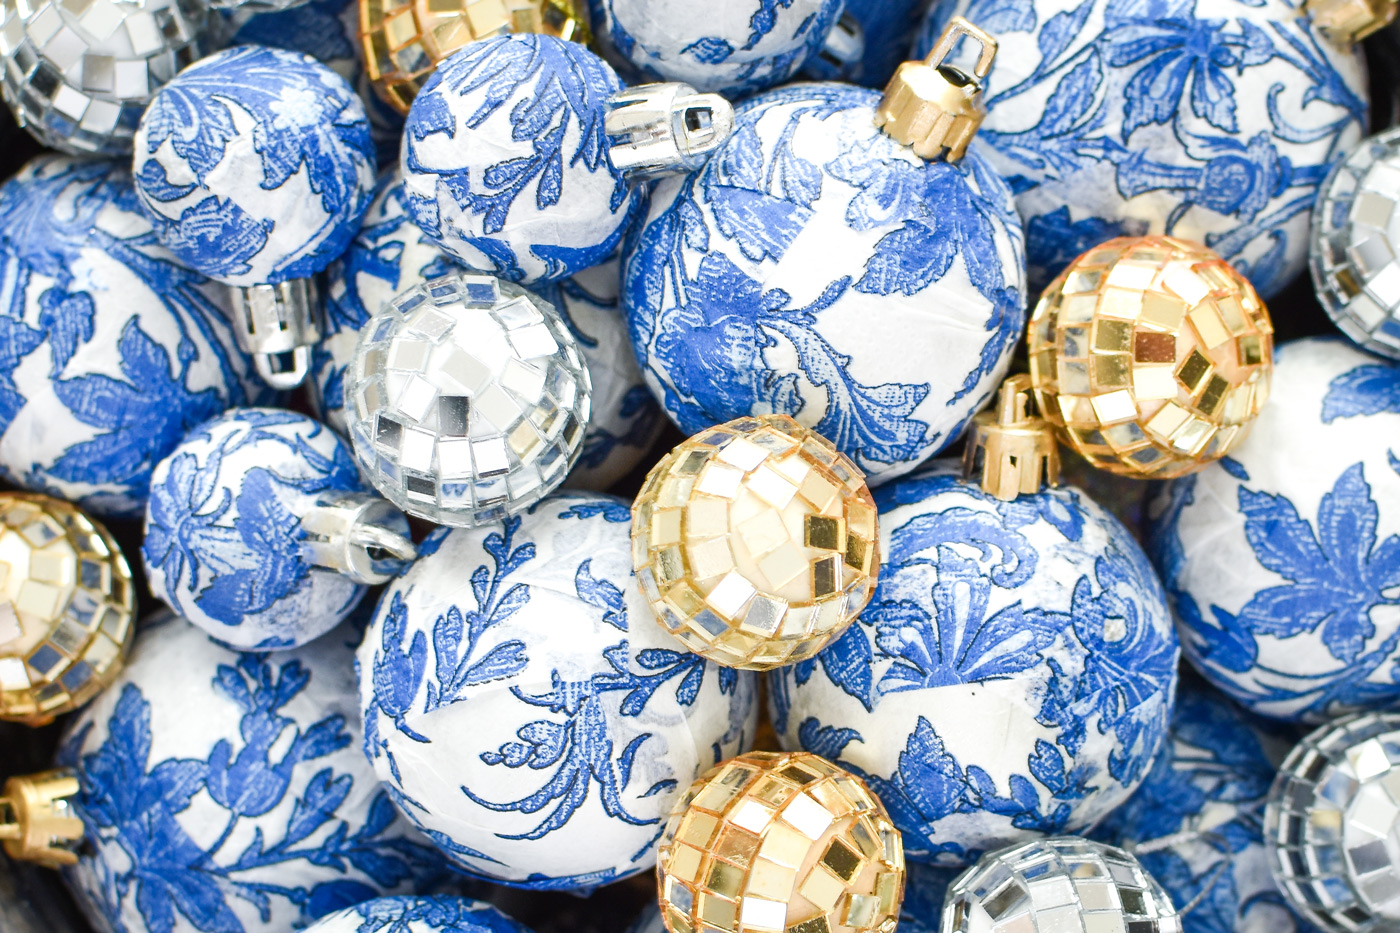 Blue and white chinoiserie DIY ornaments in a vase